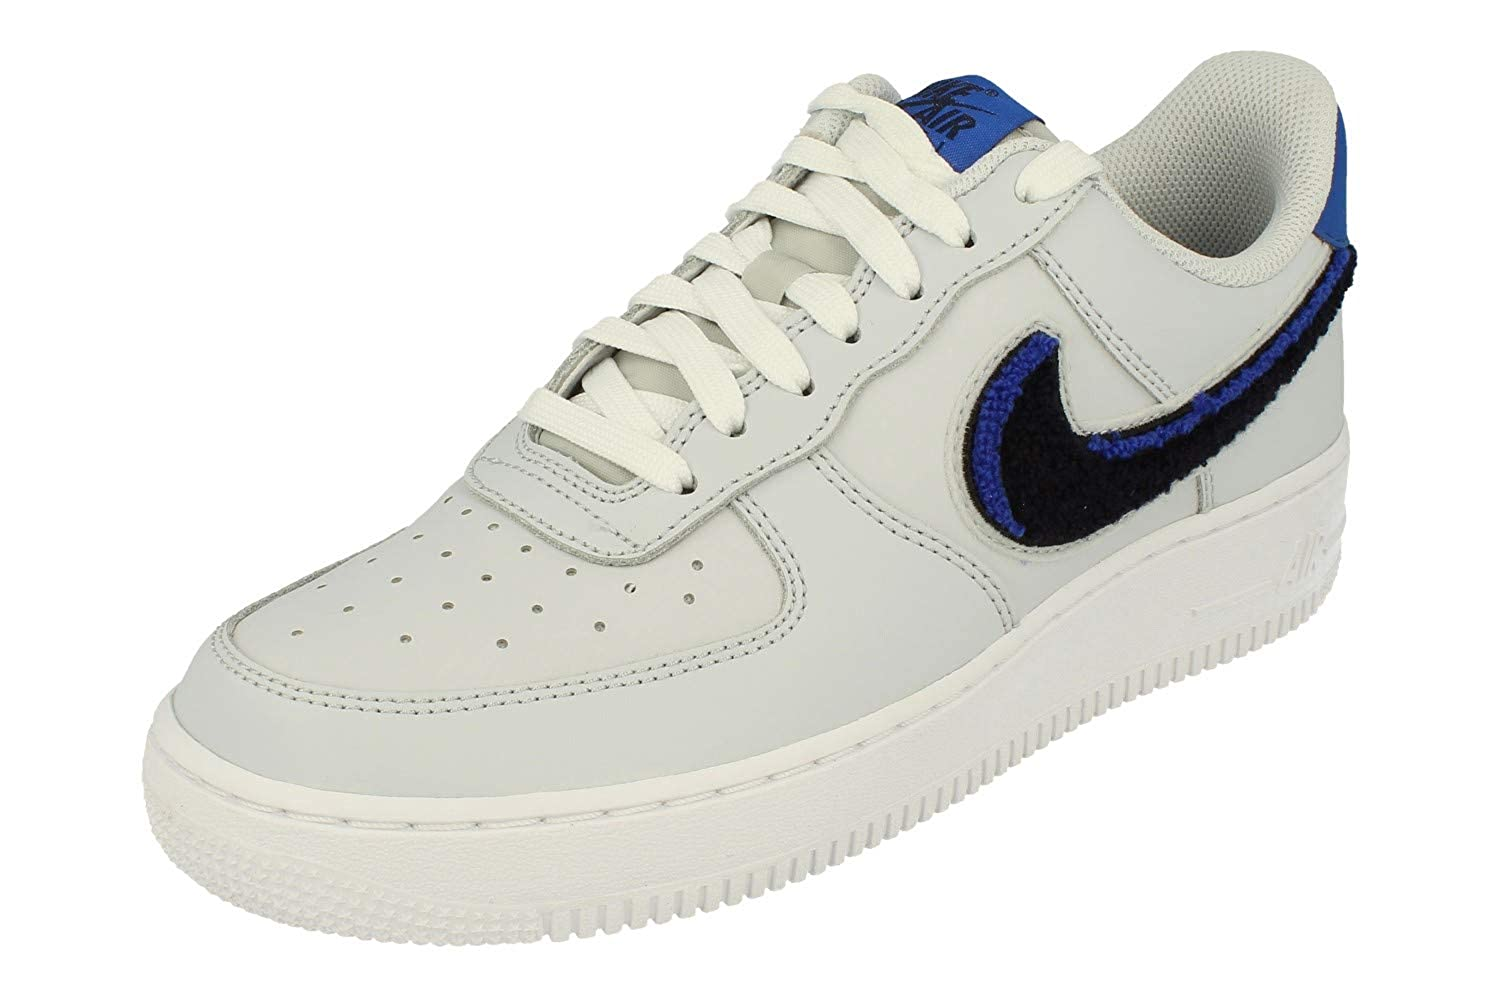 brand new 8b494 8c371 Amazon.com   Nike Air Force 1 07 LV8 Mens Trainers Bq2719 Sneakers Shoes    Shoes